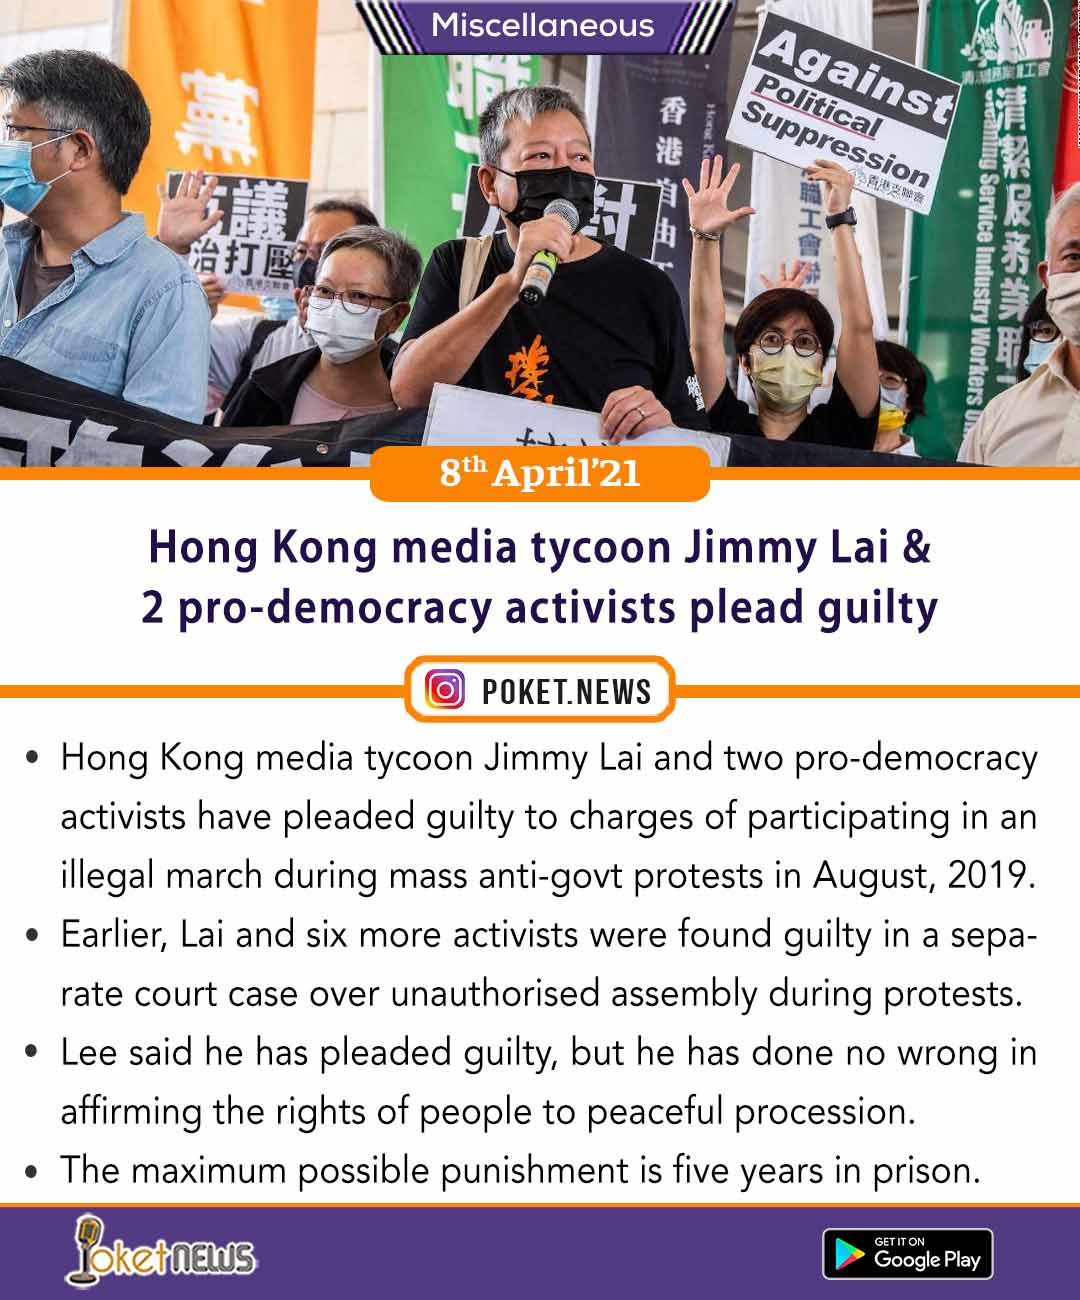 Hong Kong media tycoon Jimmy Lai and 2 pro-democracy activists plead guilty